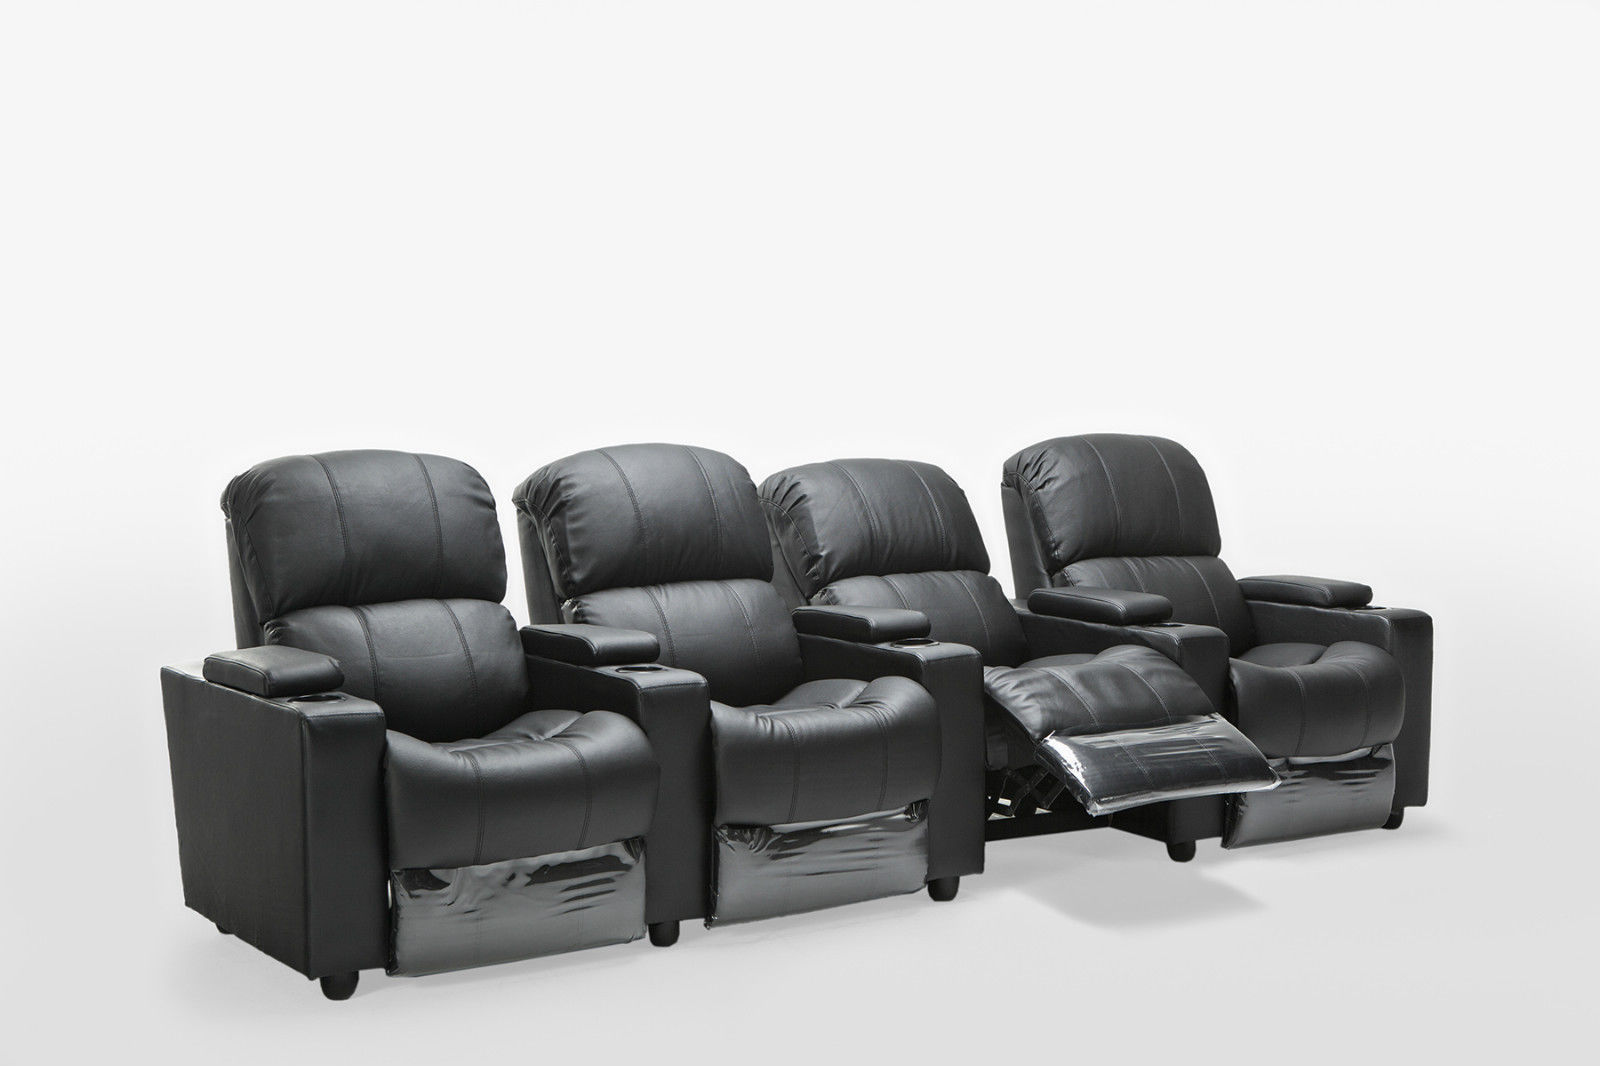 home theater chair repair marcel breuer cesca replacement leather recliner chairs melbourne 3 seater